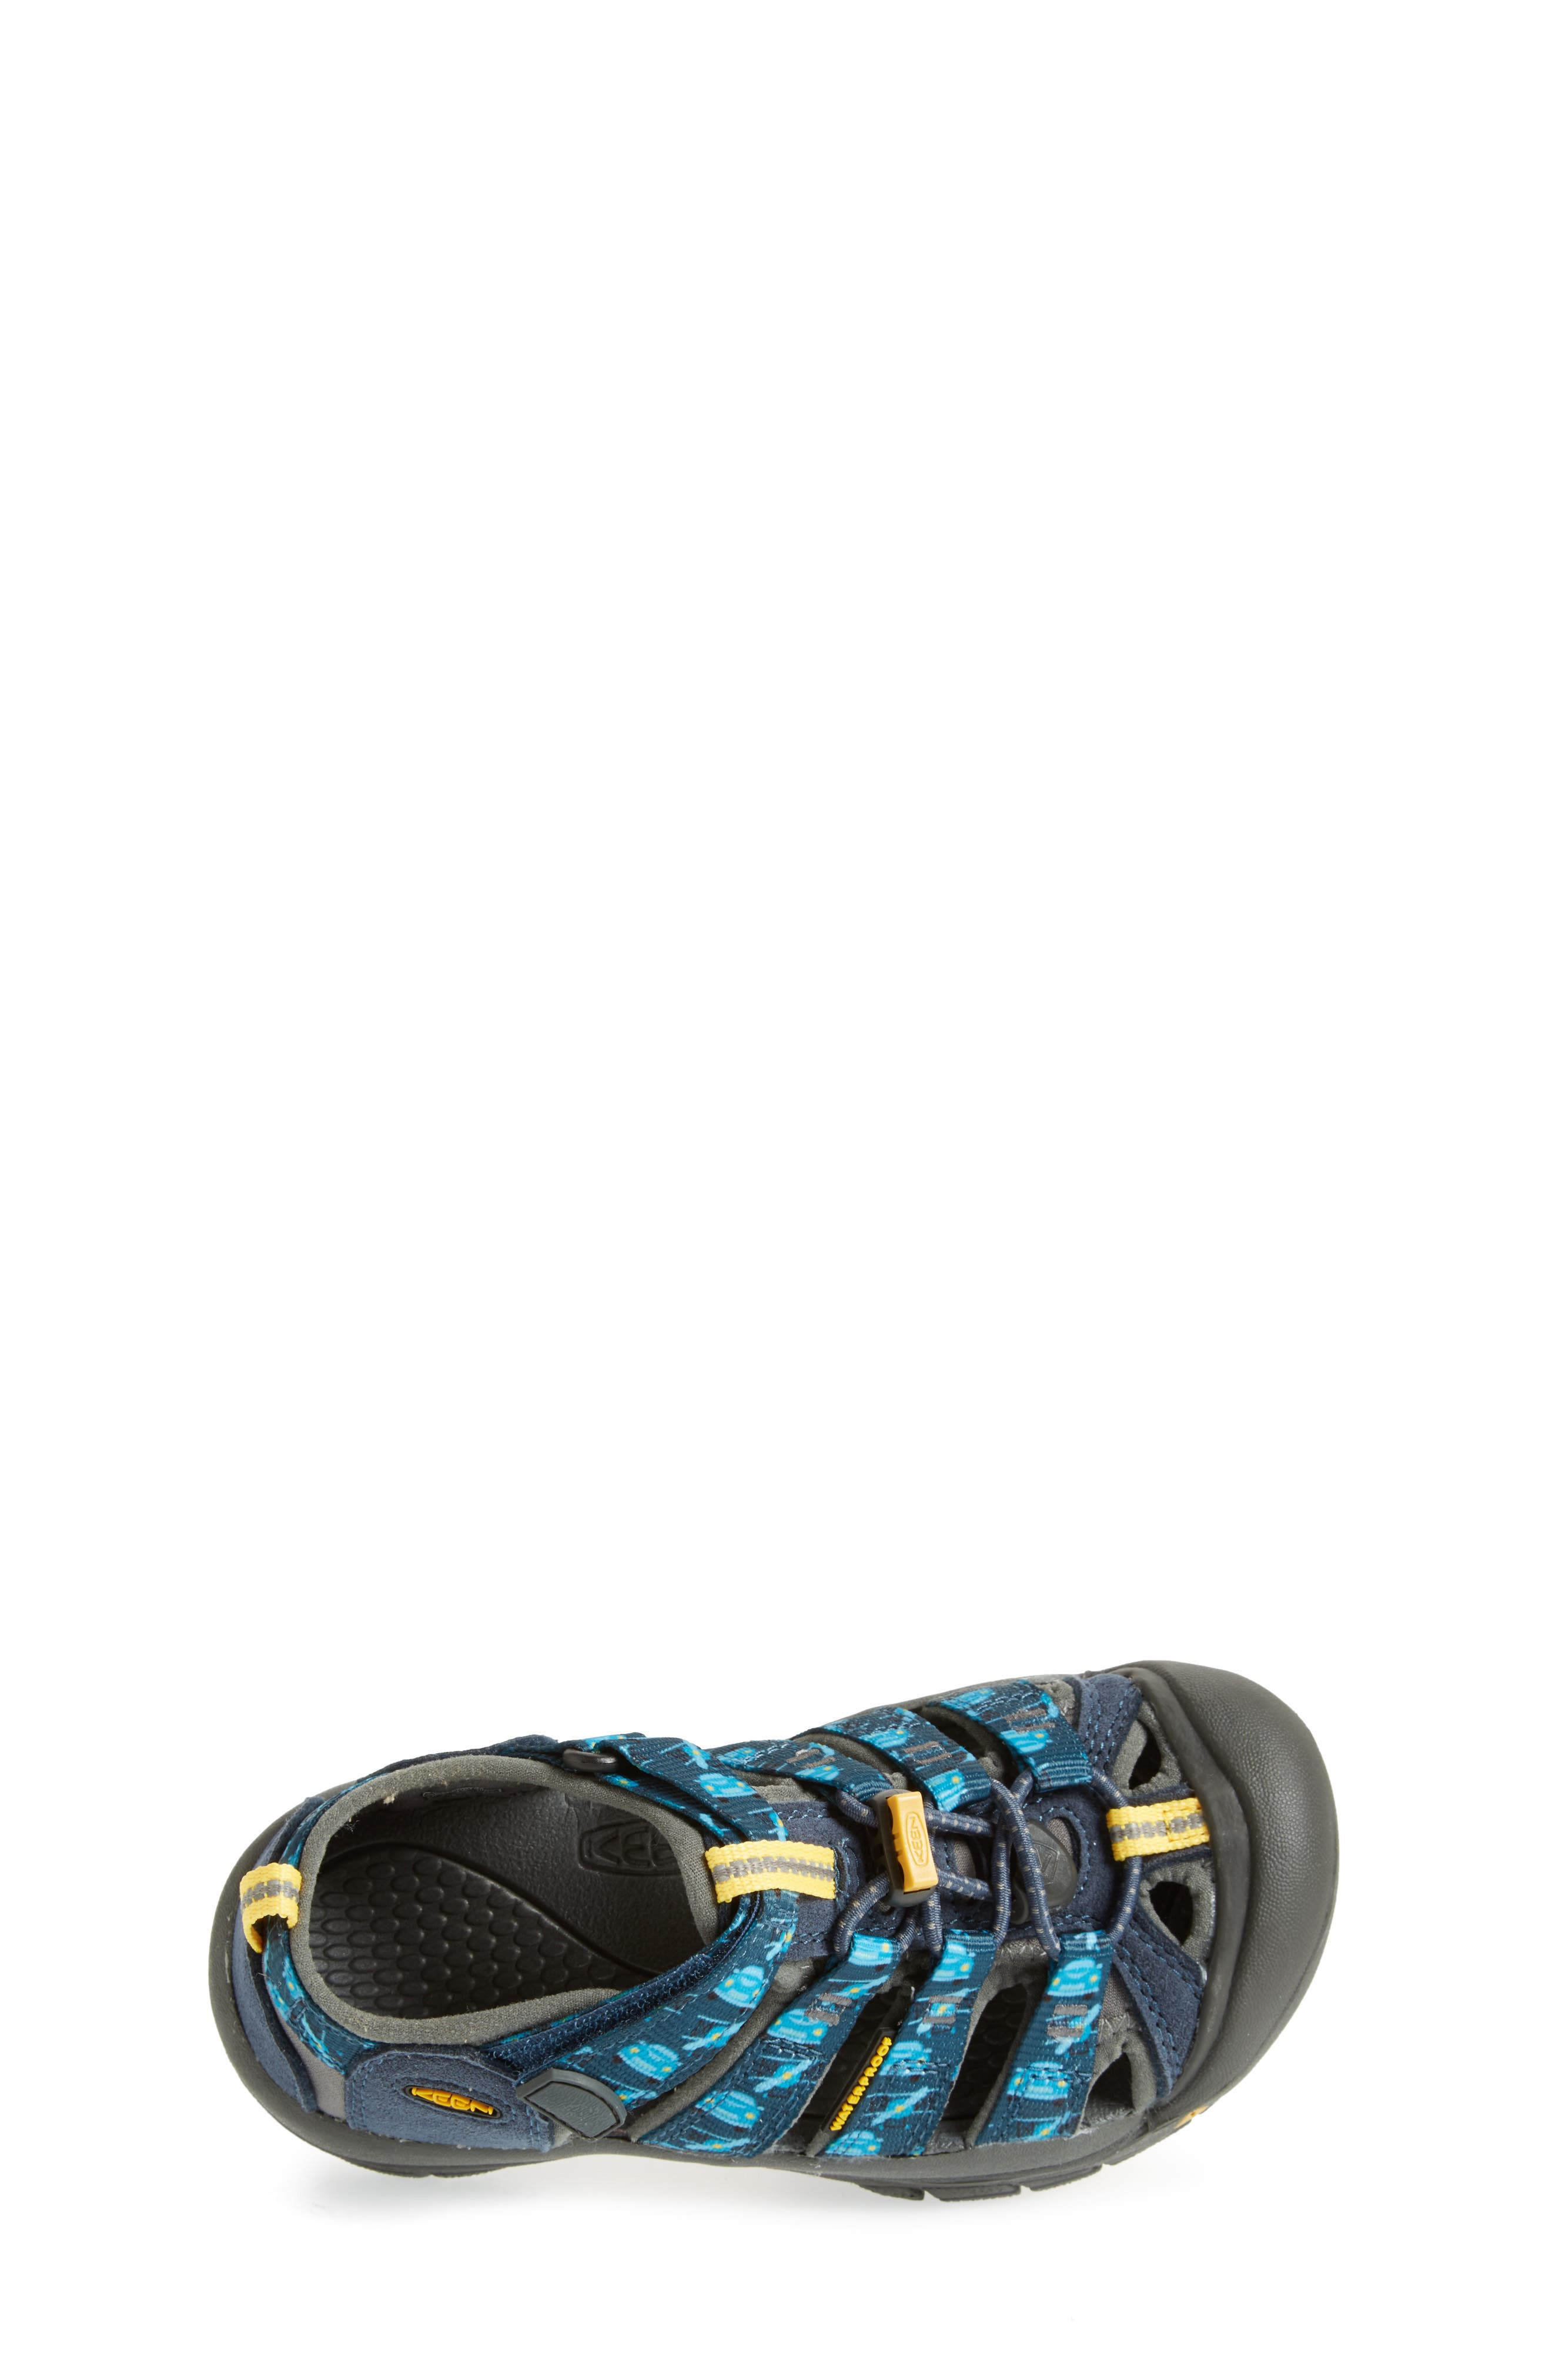 ,                             'Newport H2' Water Friendly Sandal,                             Alternate thumbnail 335, color,                             406